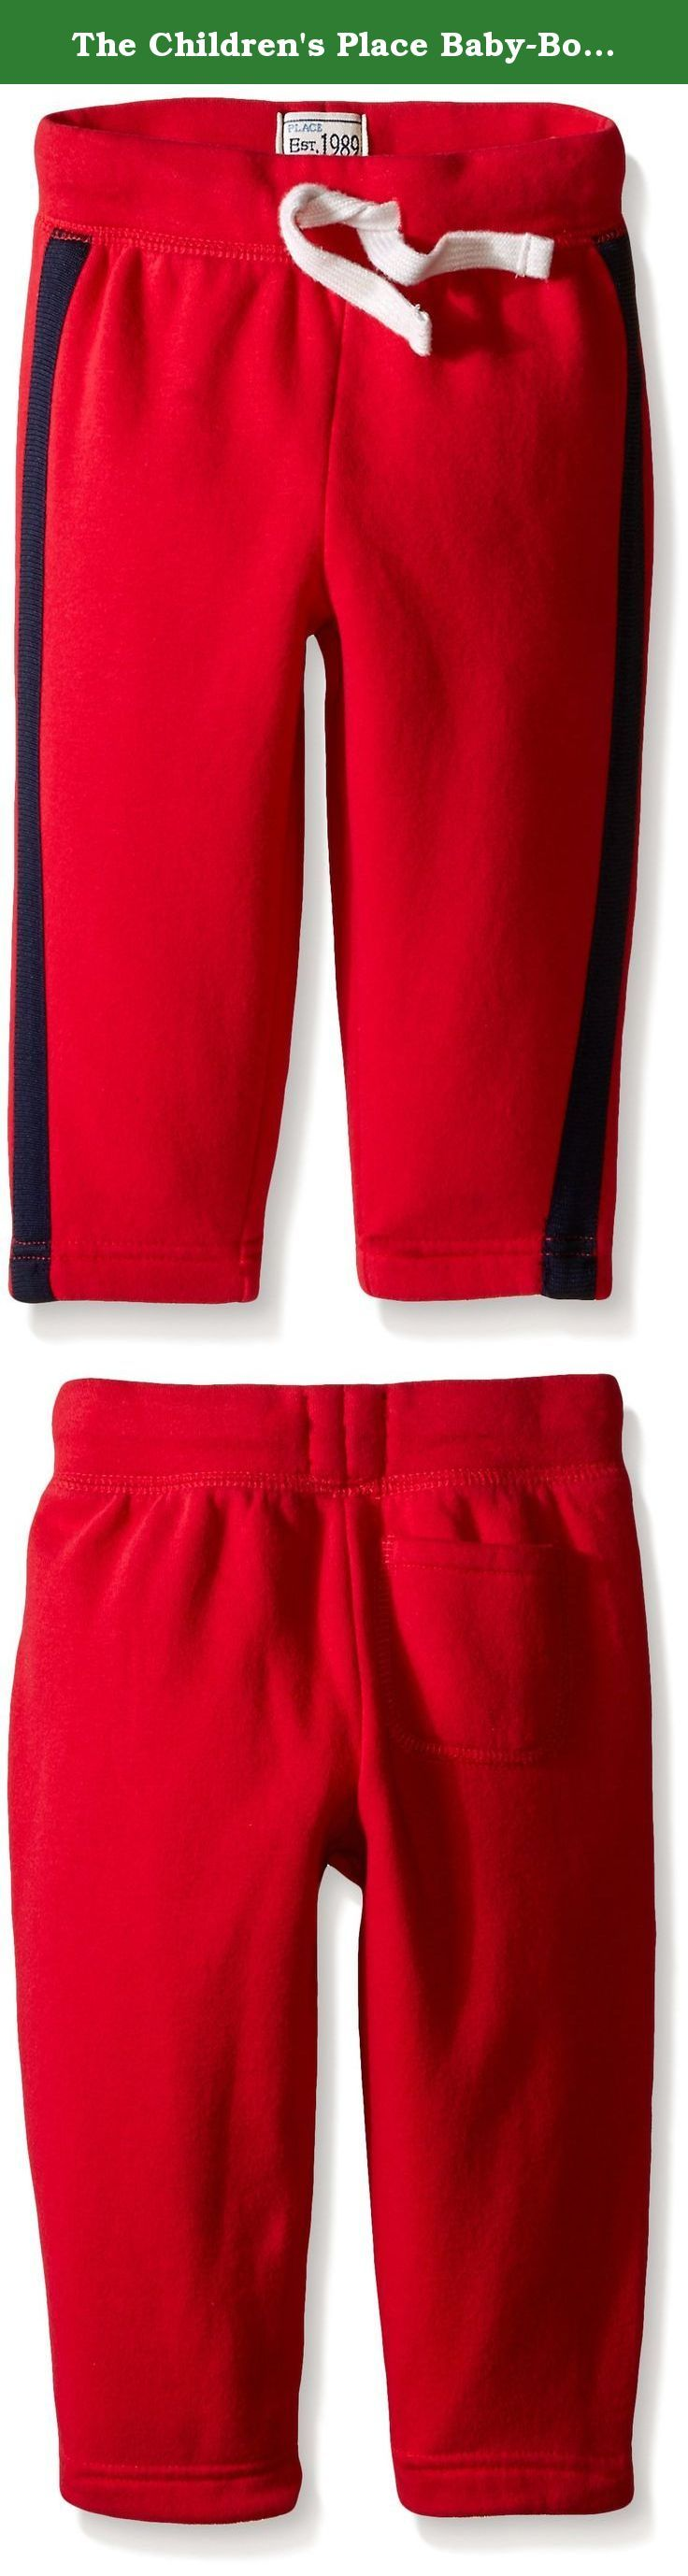 The Children's Place Baby-Boys Taped Fleece Pant. Your athlete will love to move in these fleece pants.